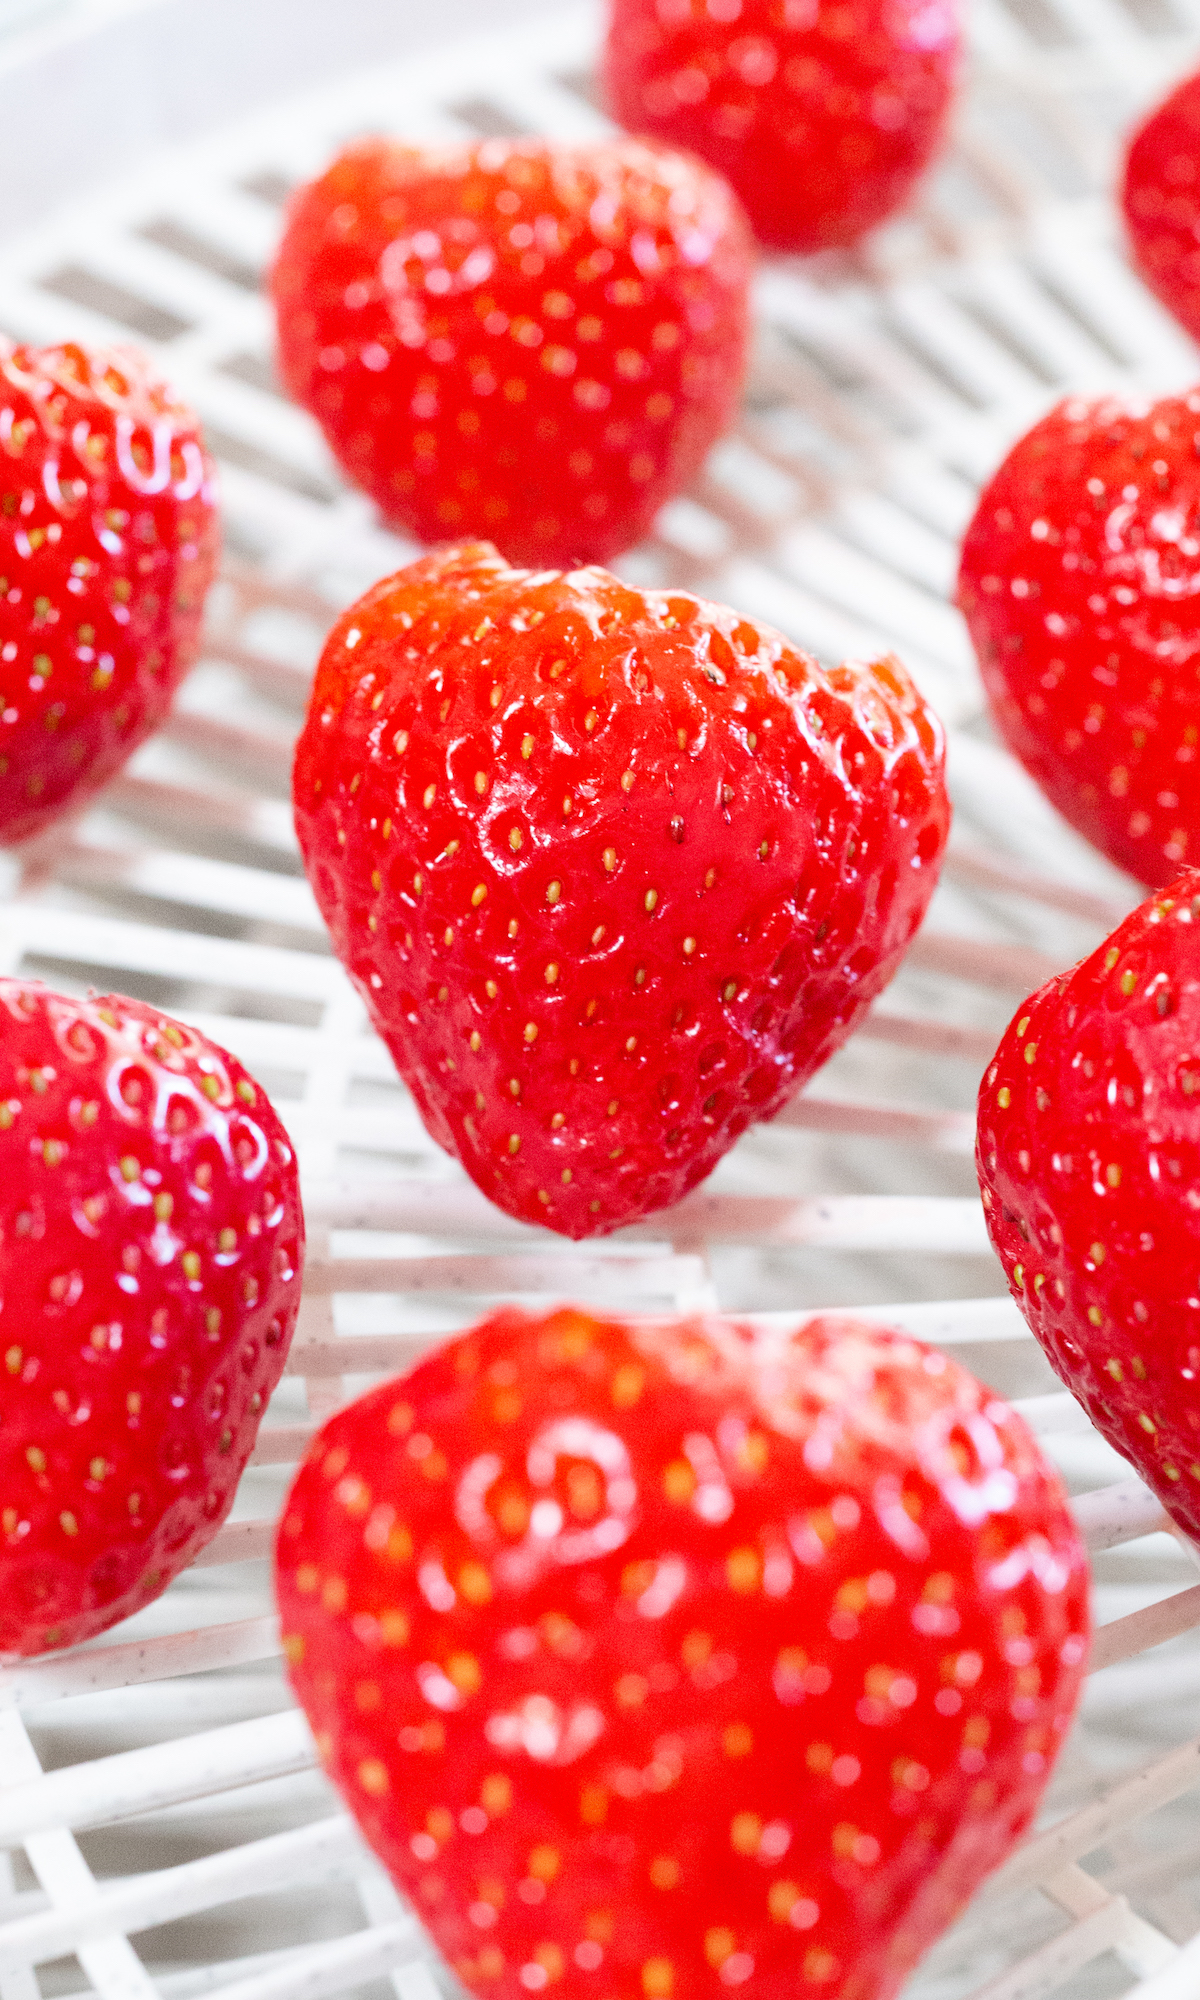 A dehydrated tray is filled with bright red whole strawberries